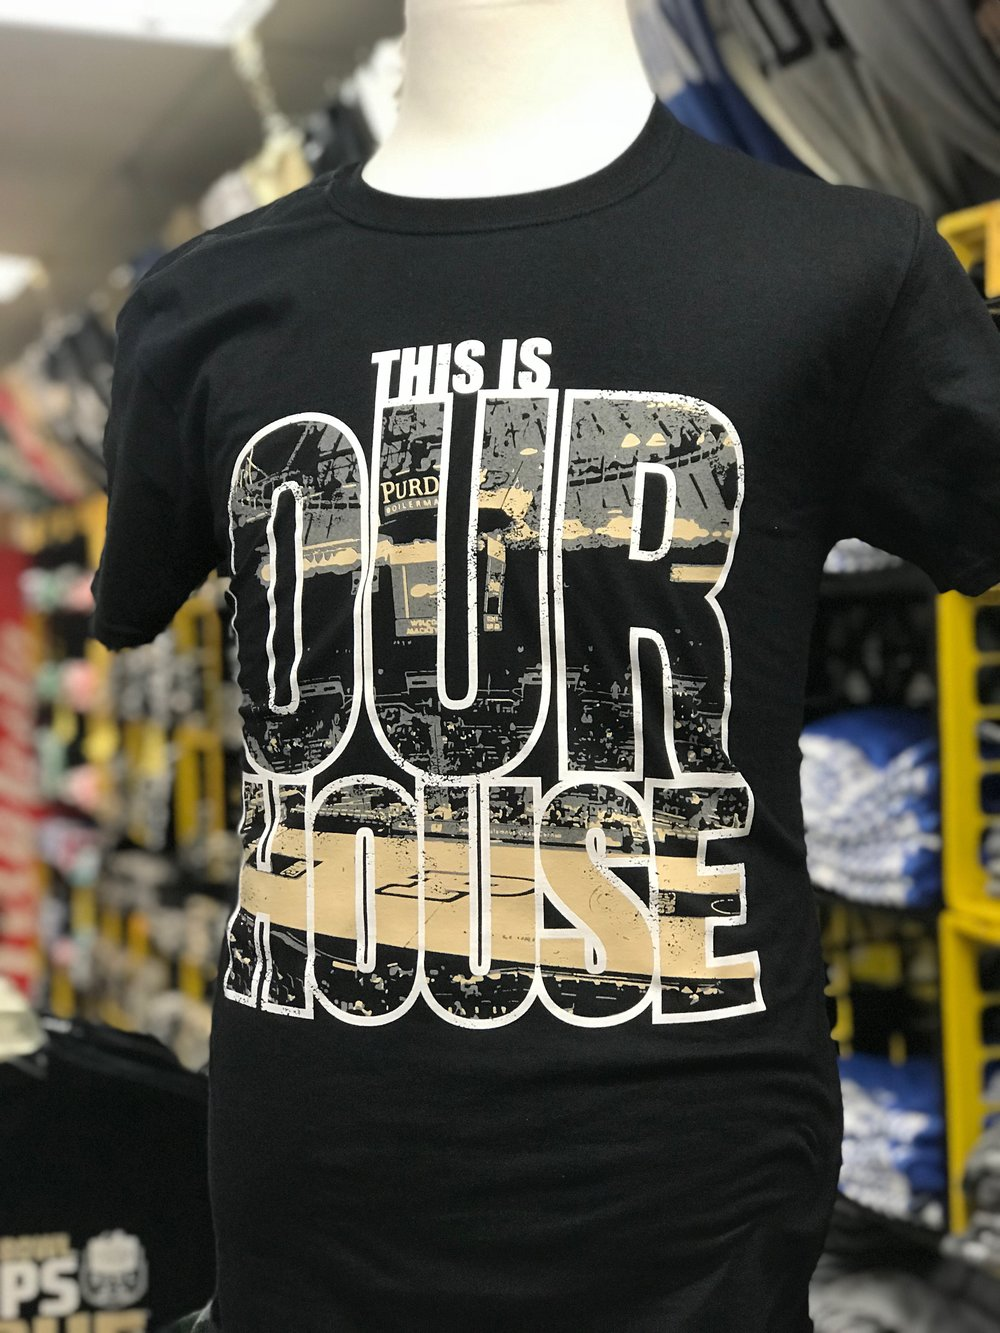 Purdue Basketball Our House T Shirt.jpg